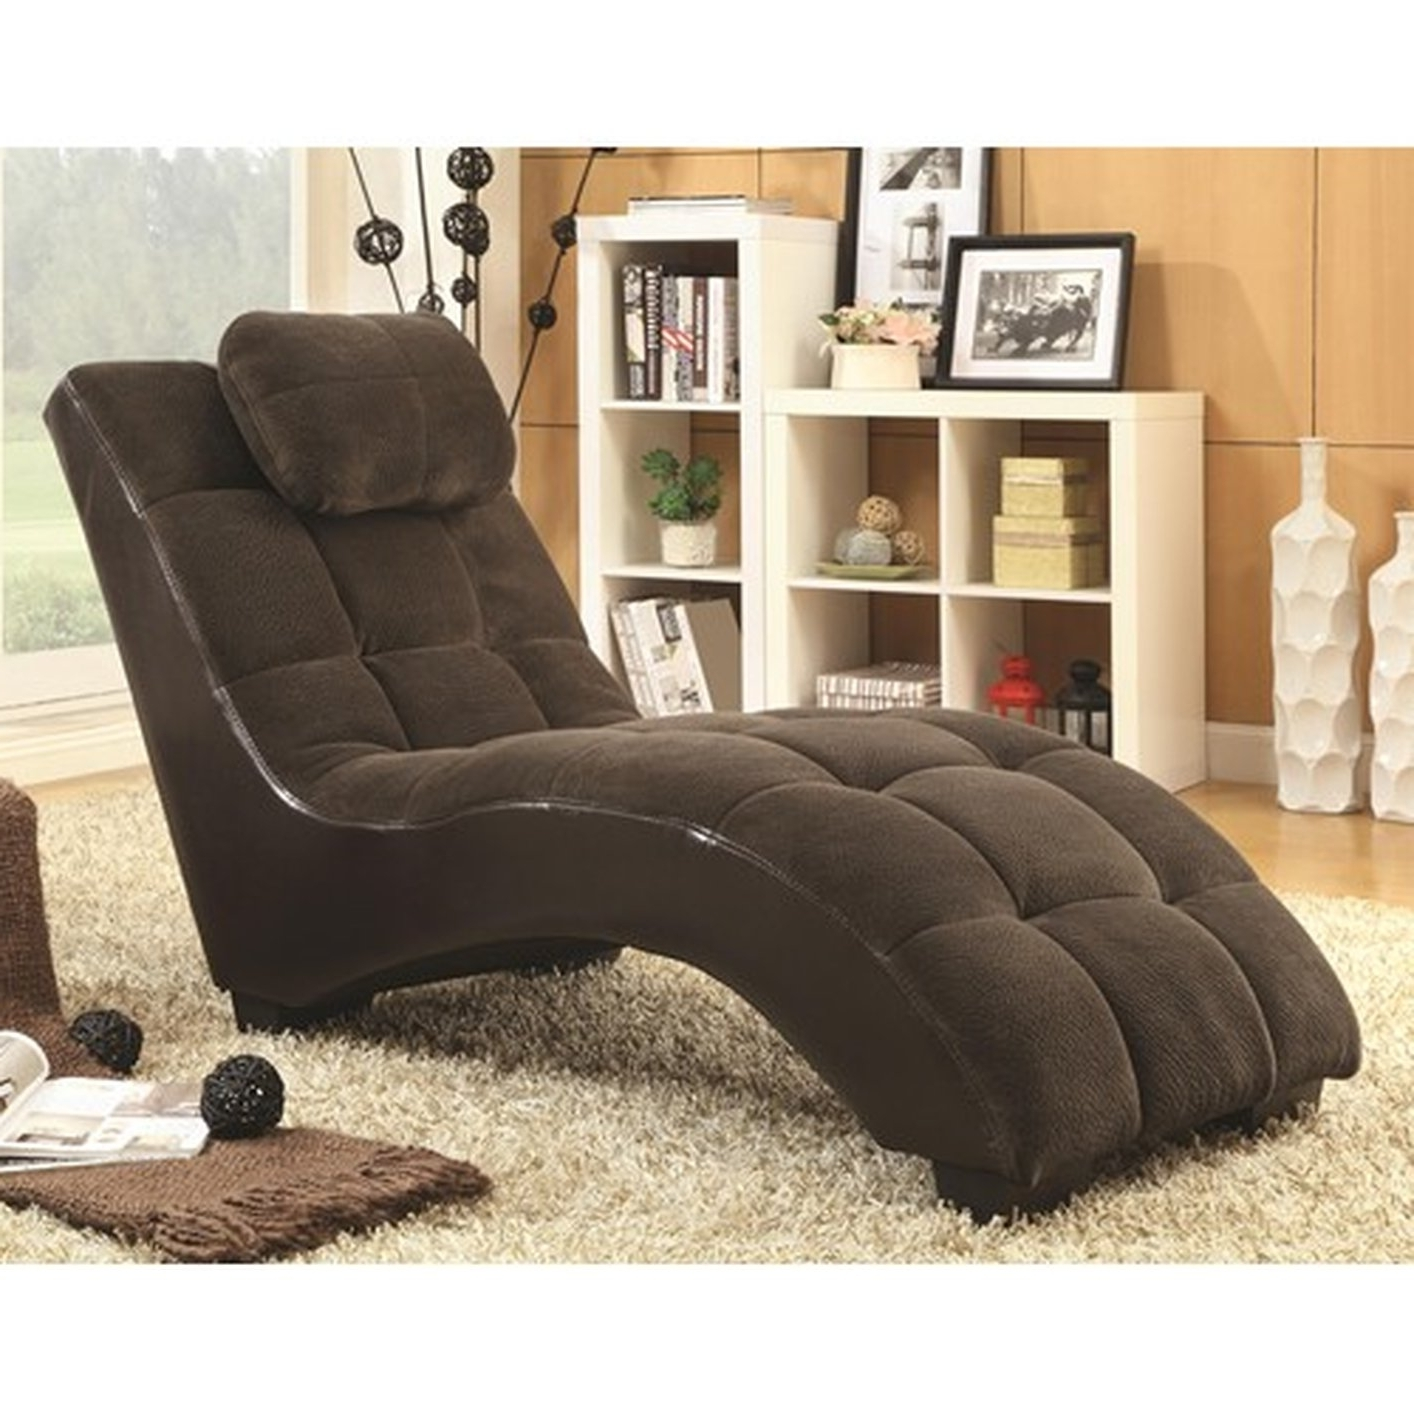 Brown Fabric Chaise Lounge – Steal A Sofa Furniture Outlet Los For Widely Used Brown Chaise Lounges (View 4 of 15)